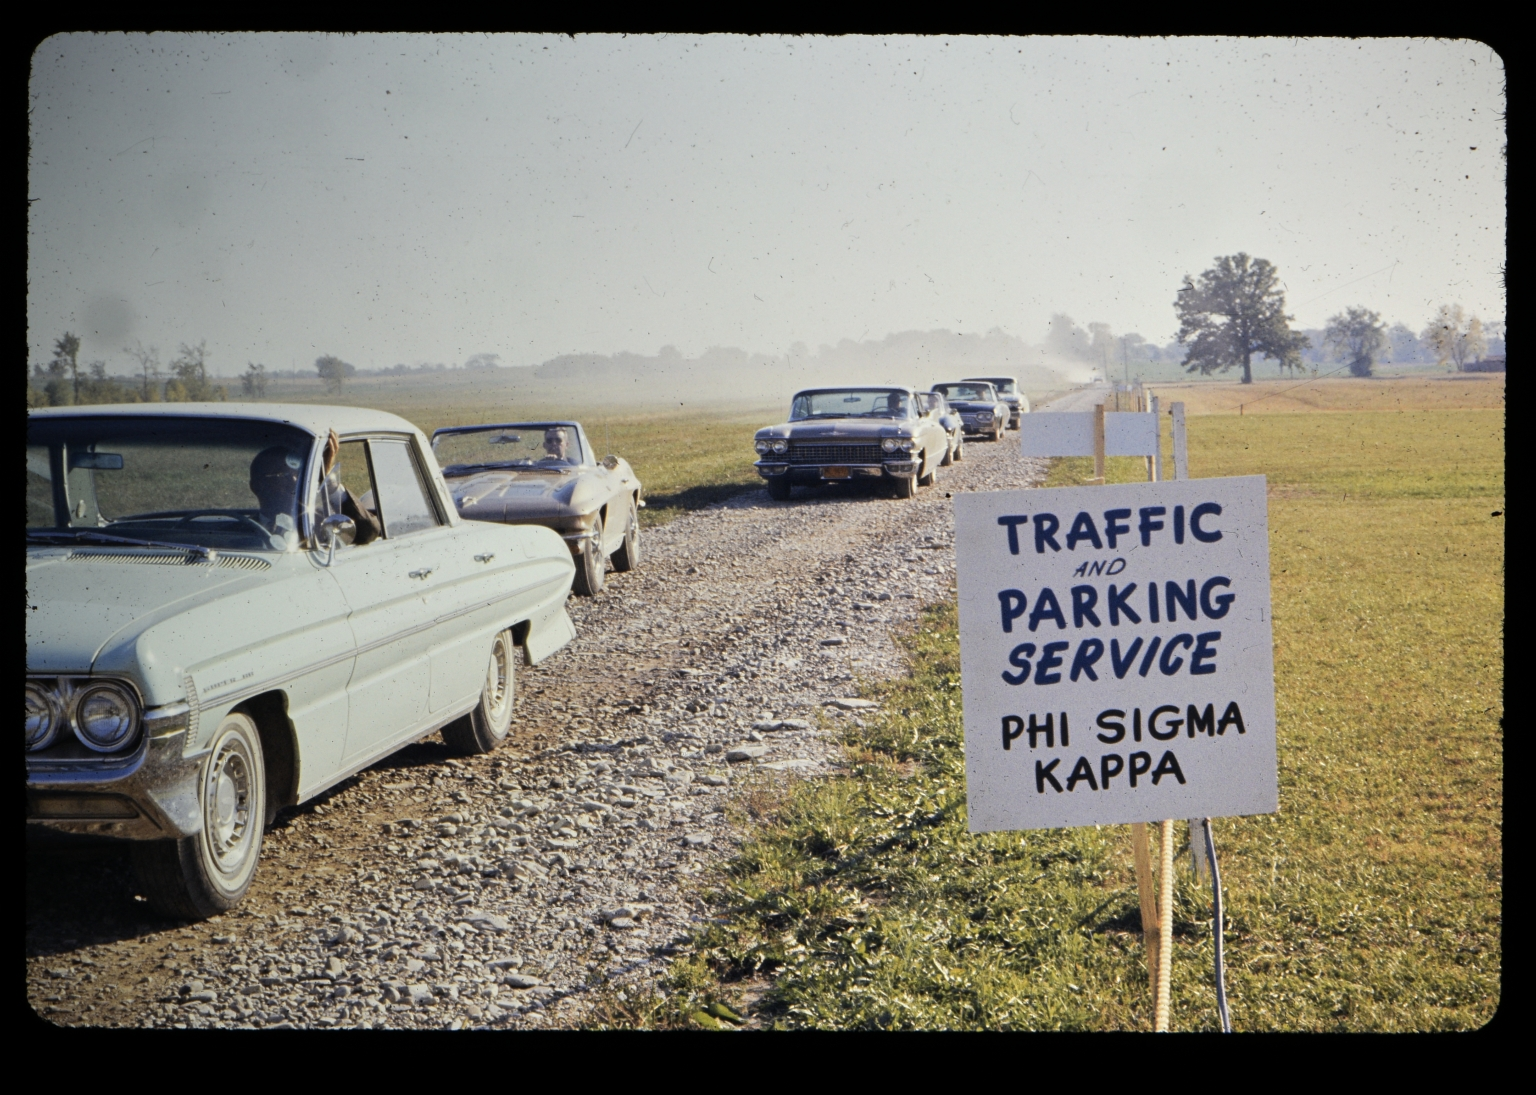 Traffic and parking service